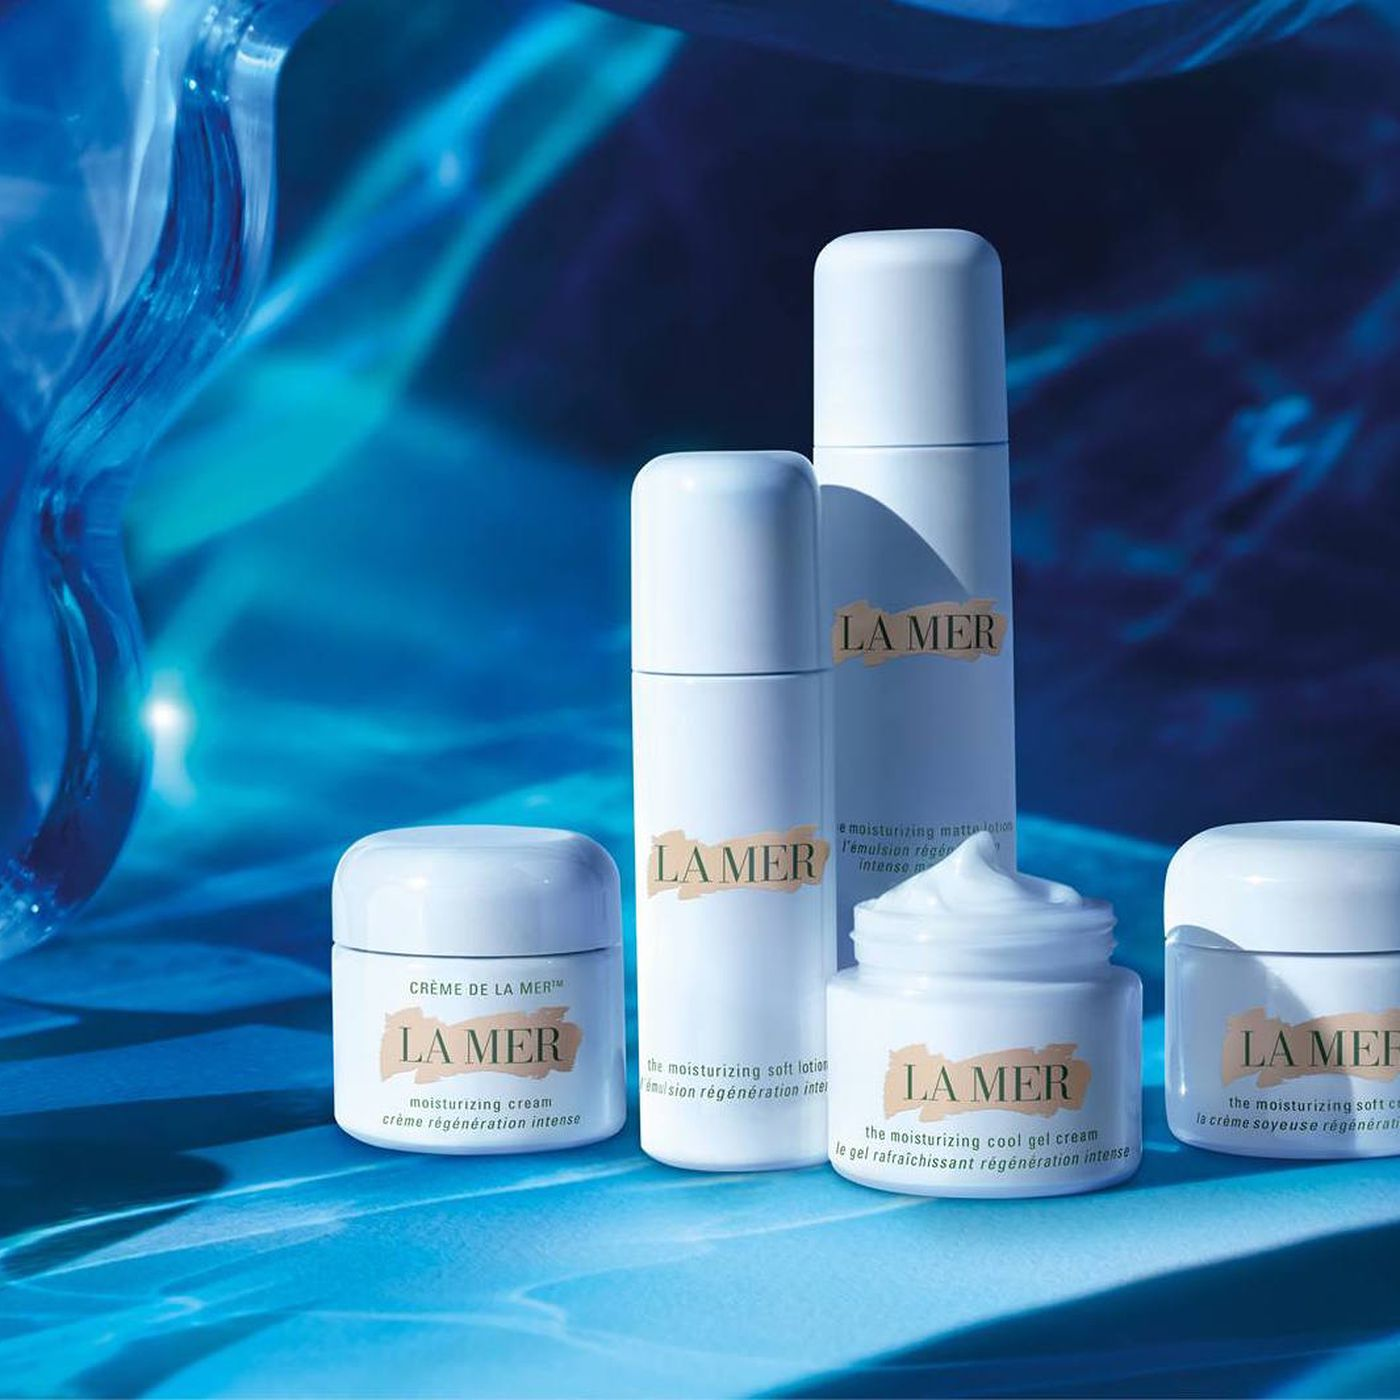 La Mer is being sued for allegedly misleading Chinese